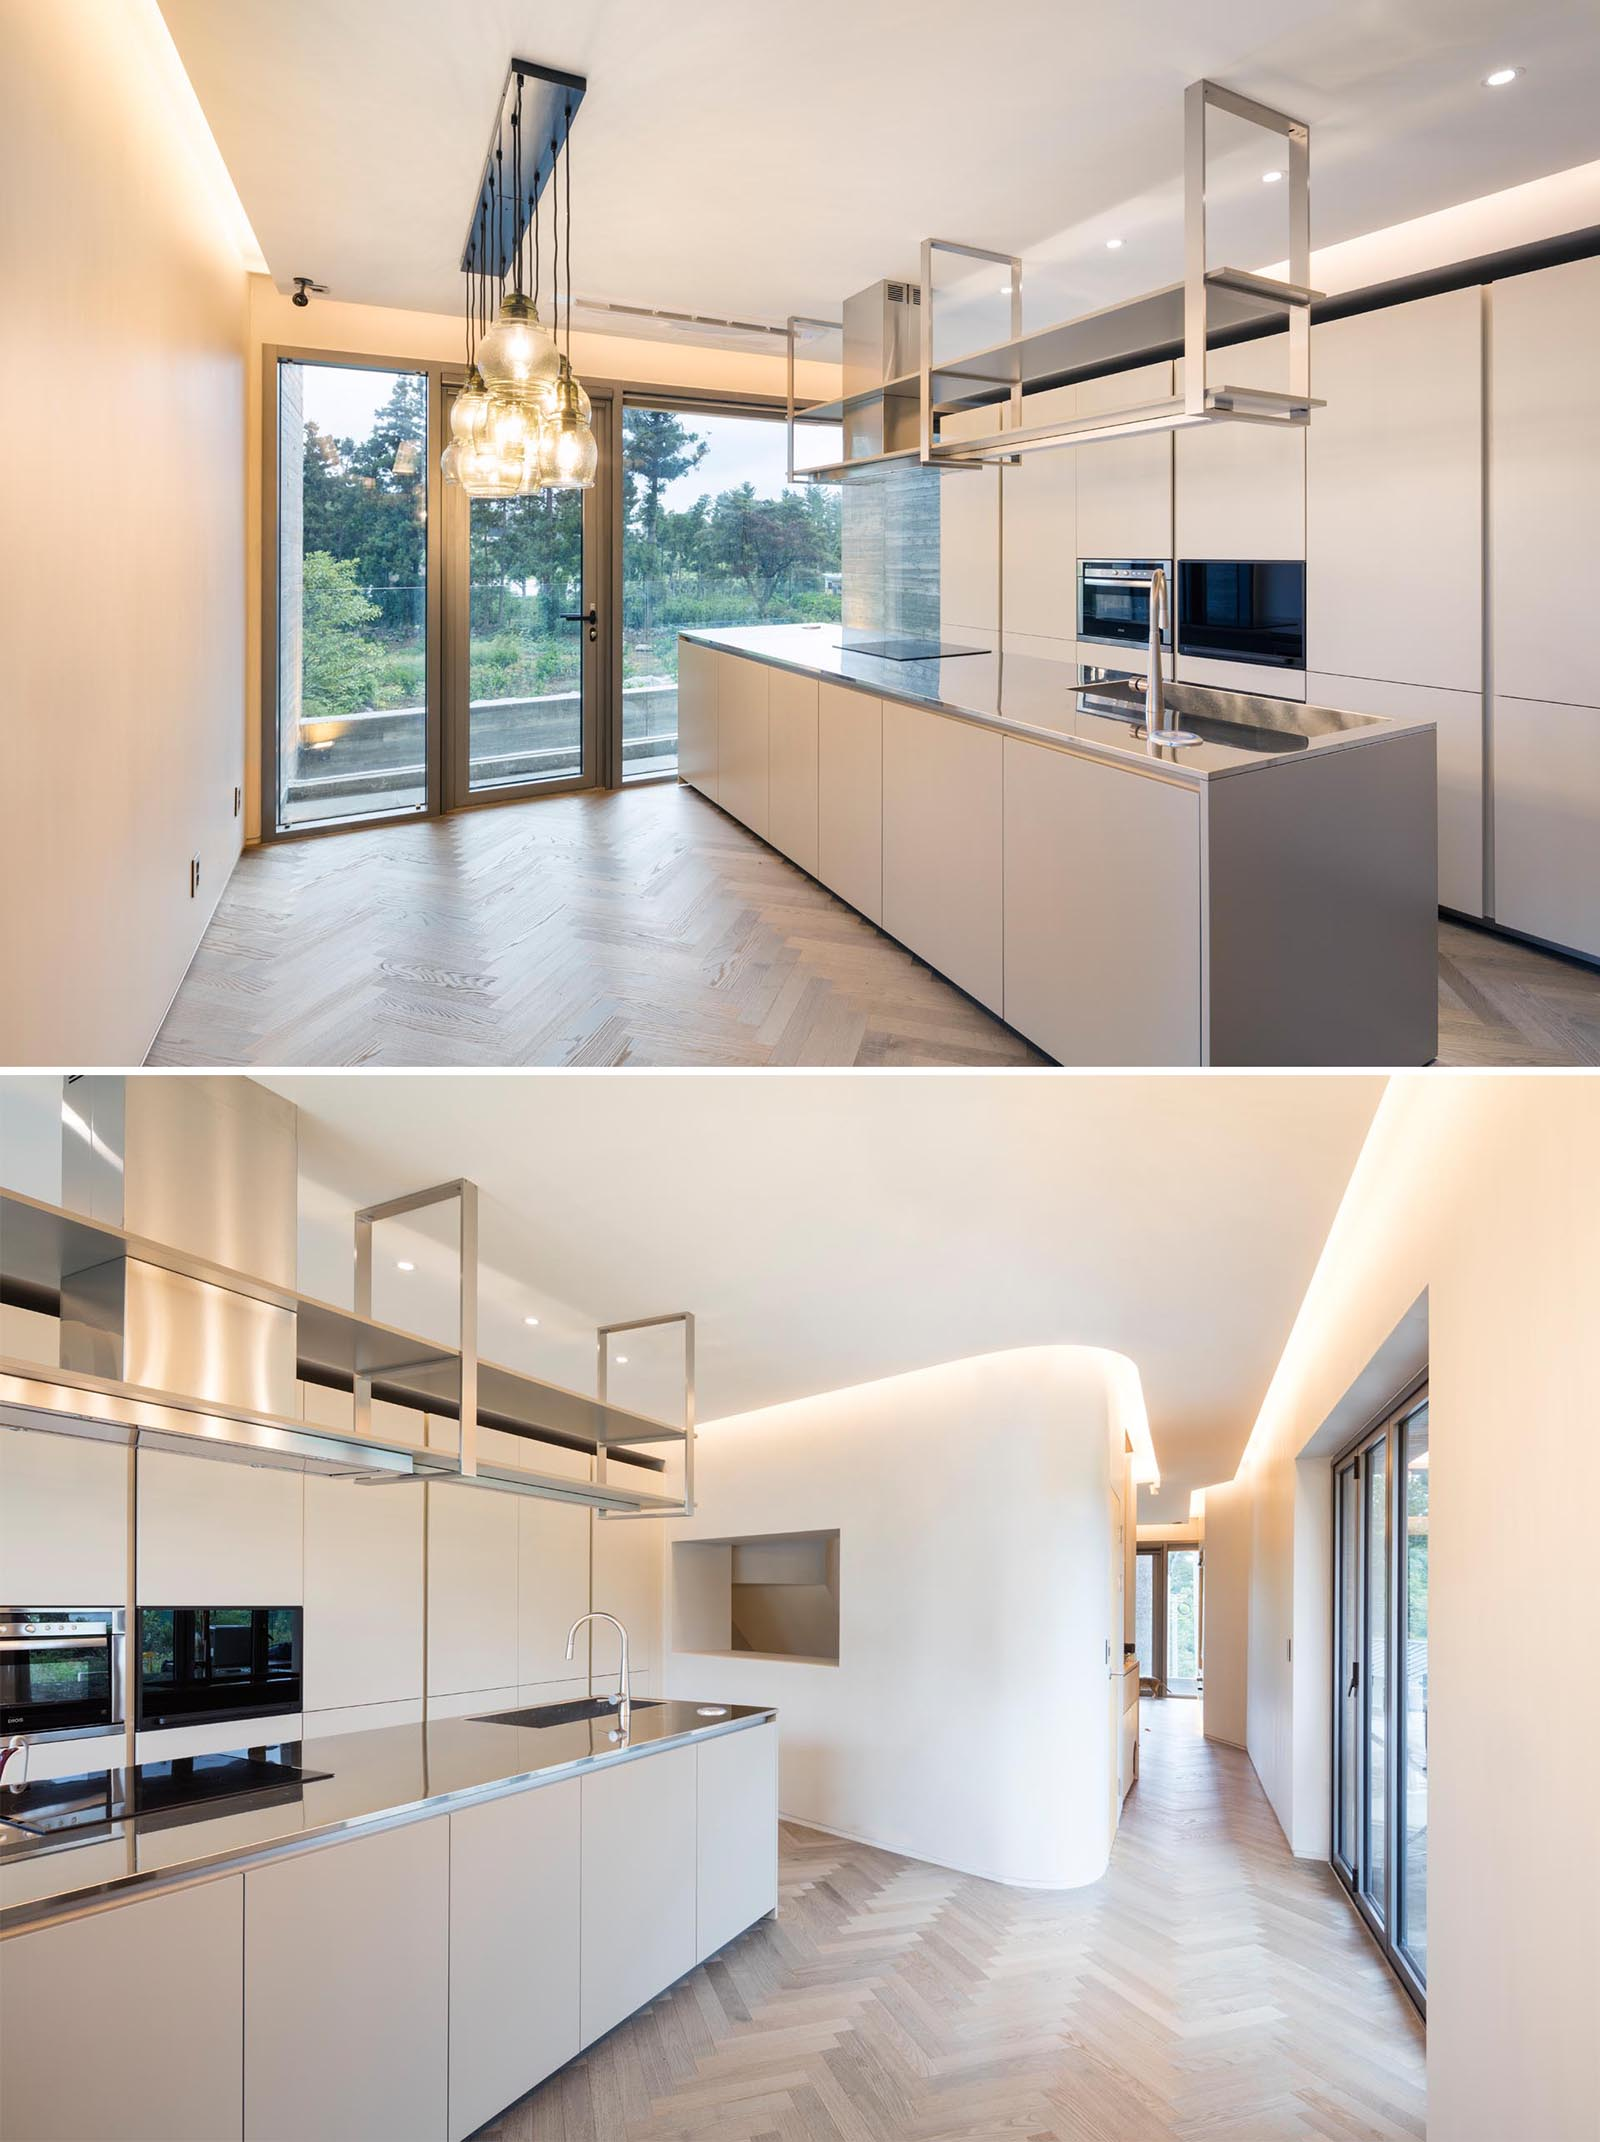 A modern kitchen with white walls and cabinets, wood flooring, and hidden lighting.